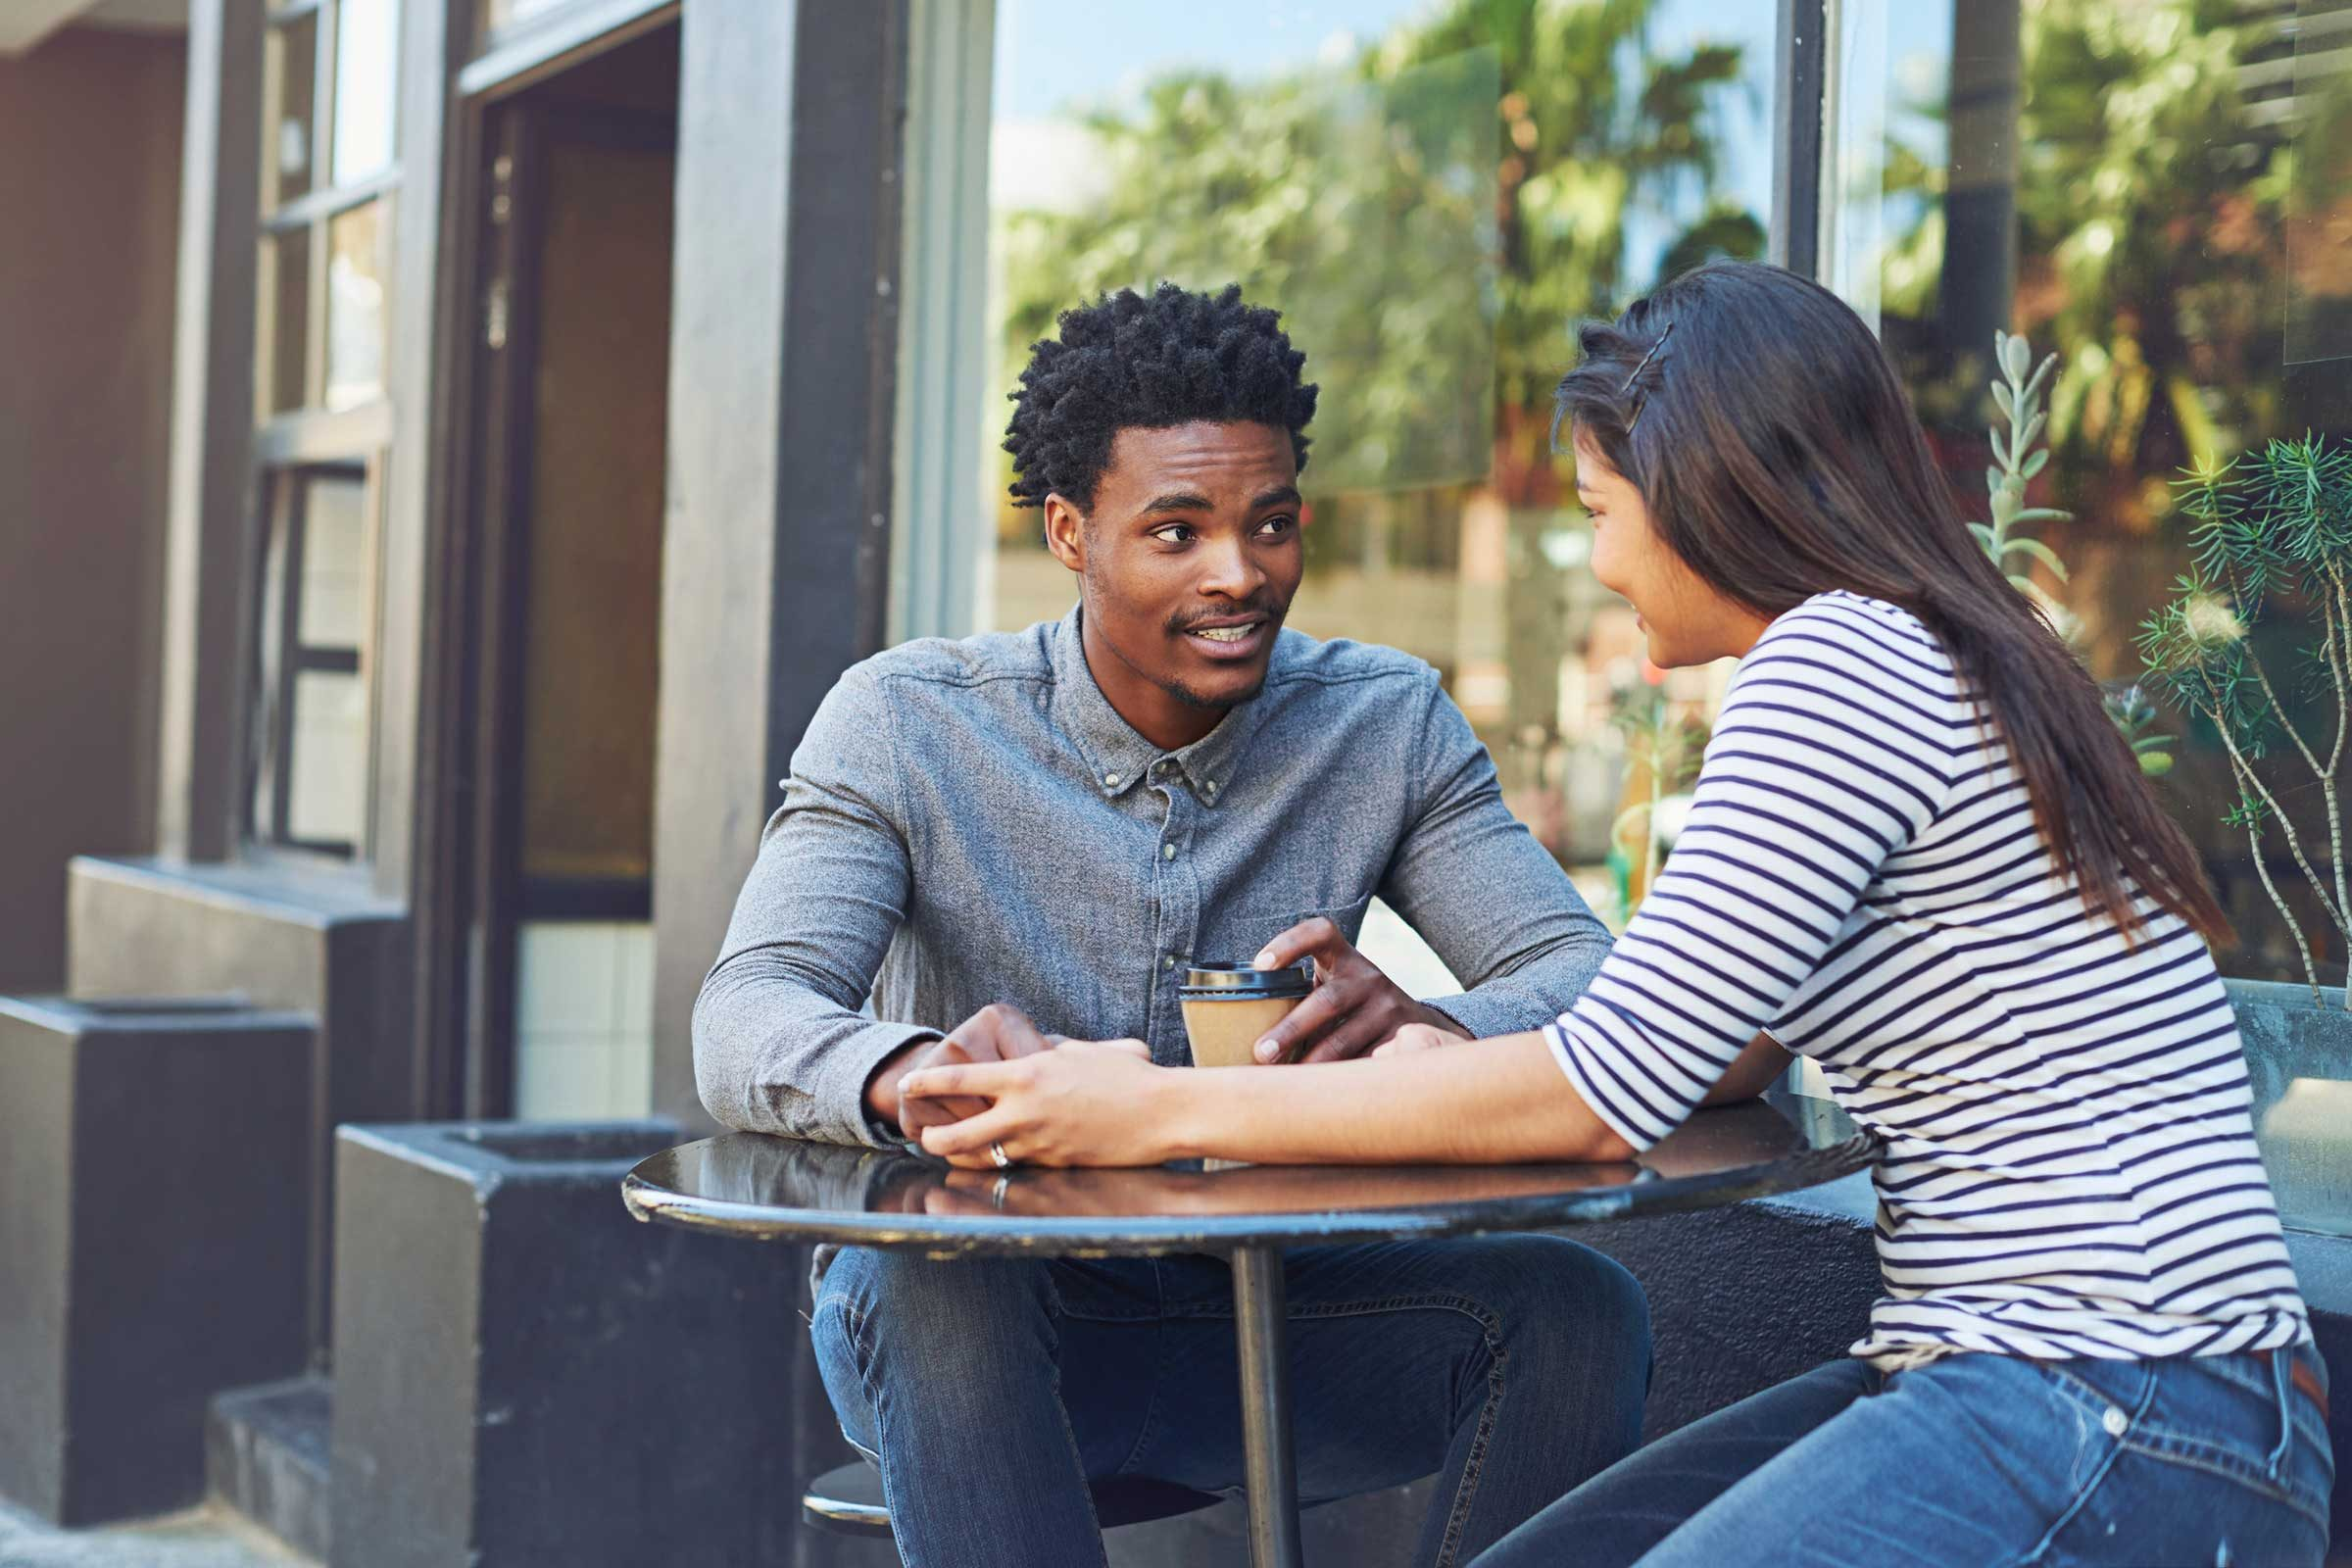 Conversation starters for couples dating chicago